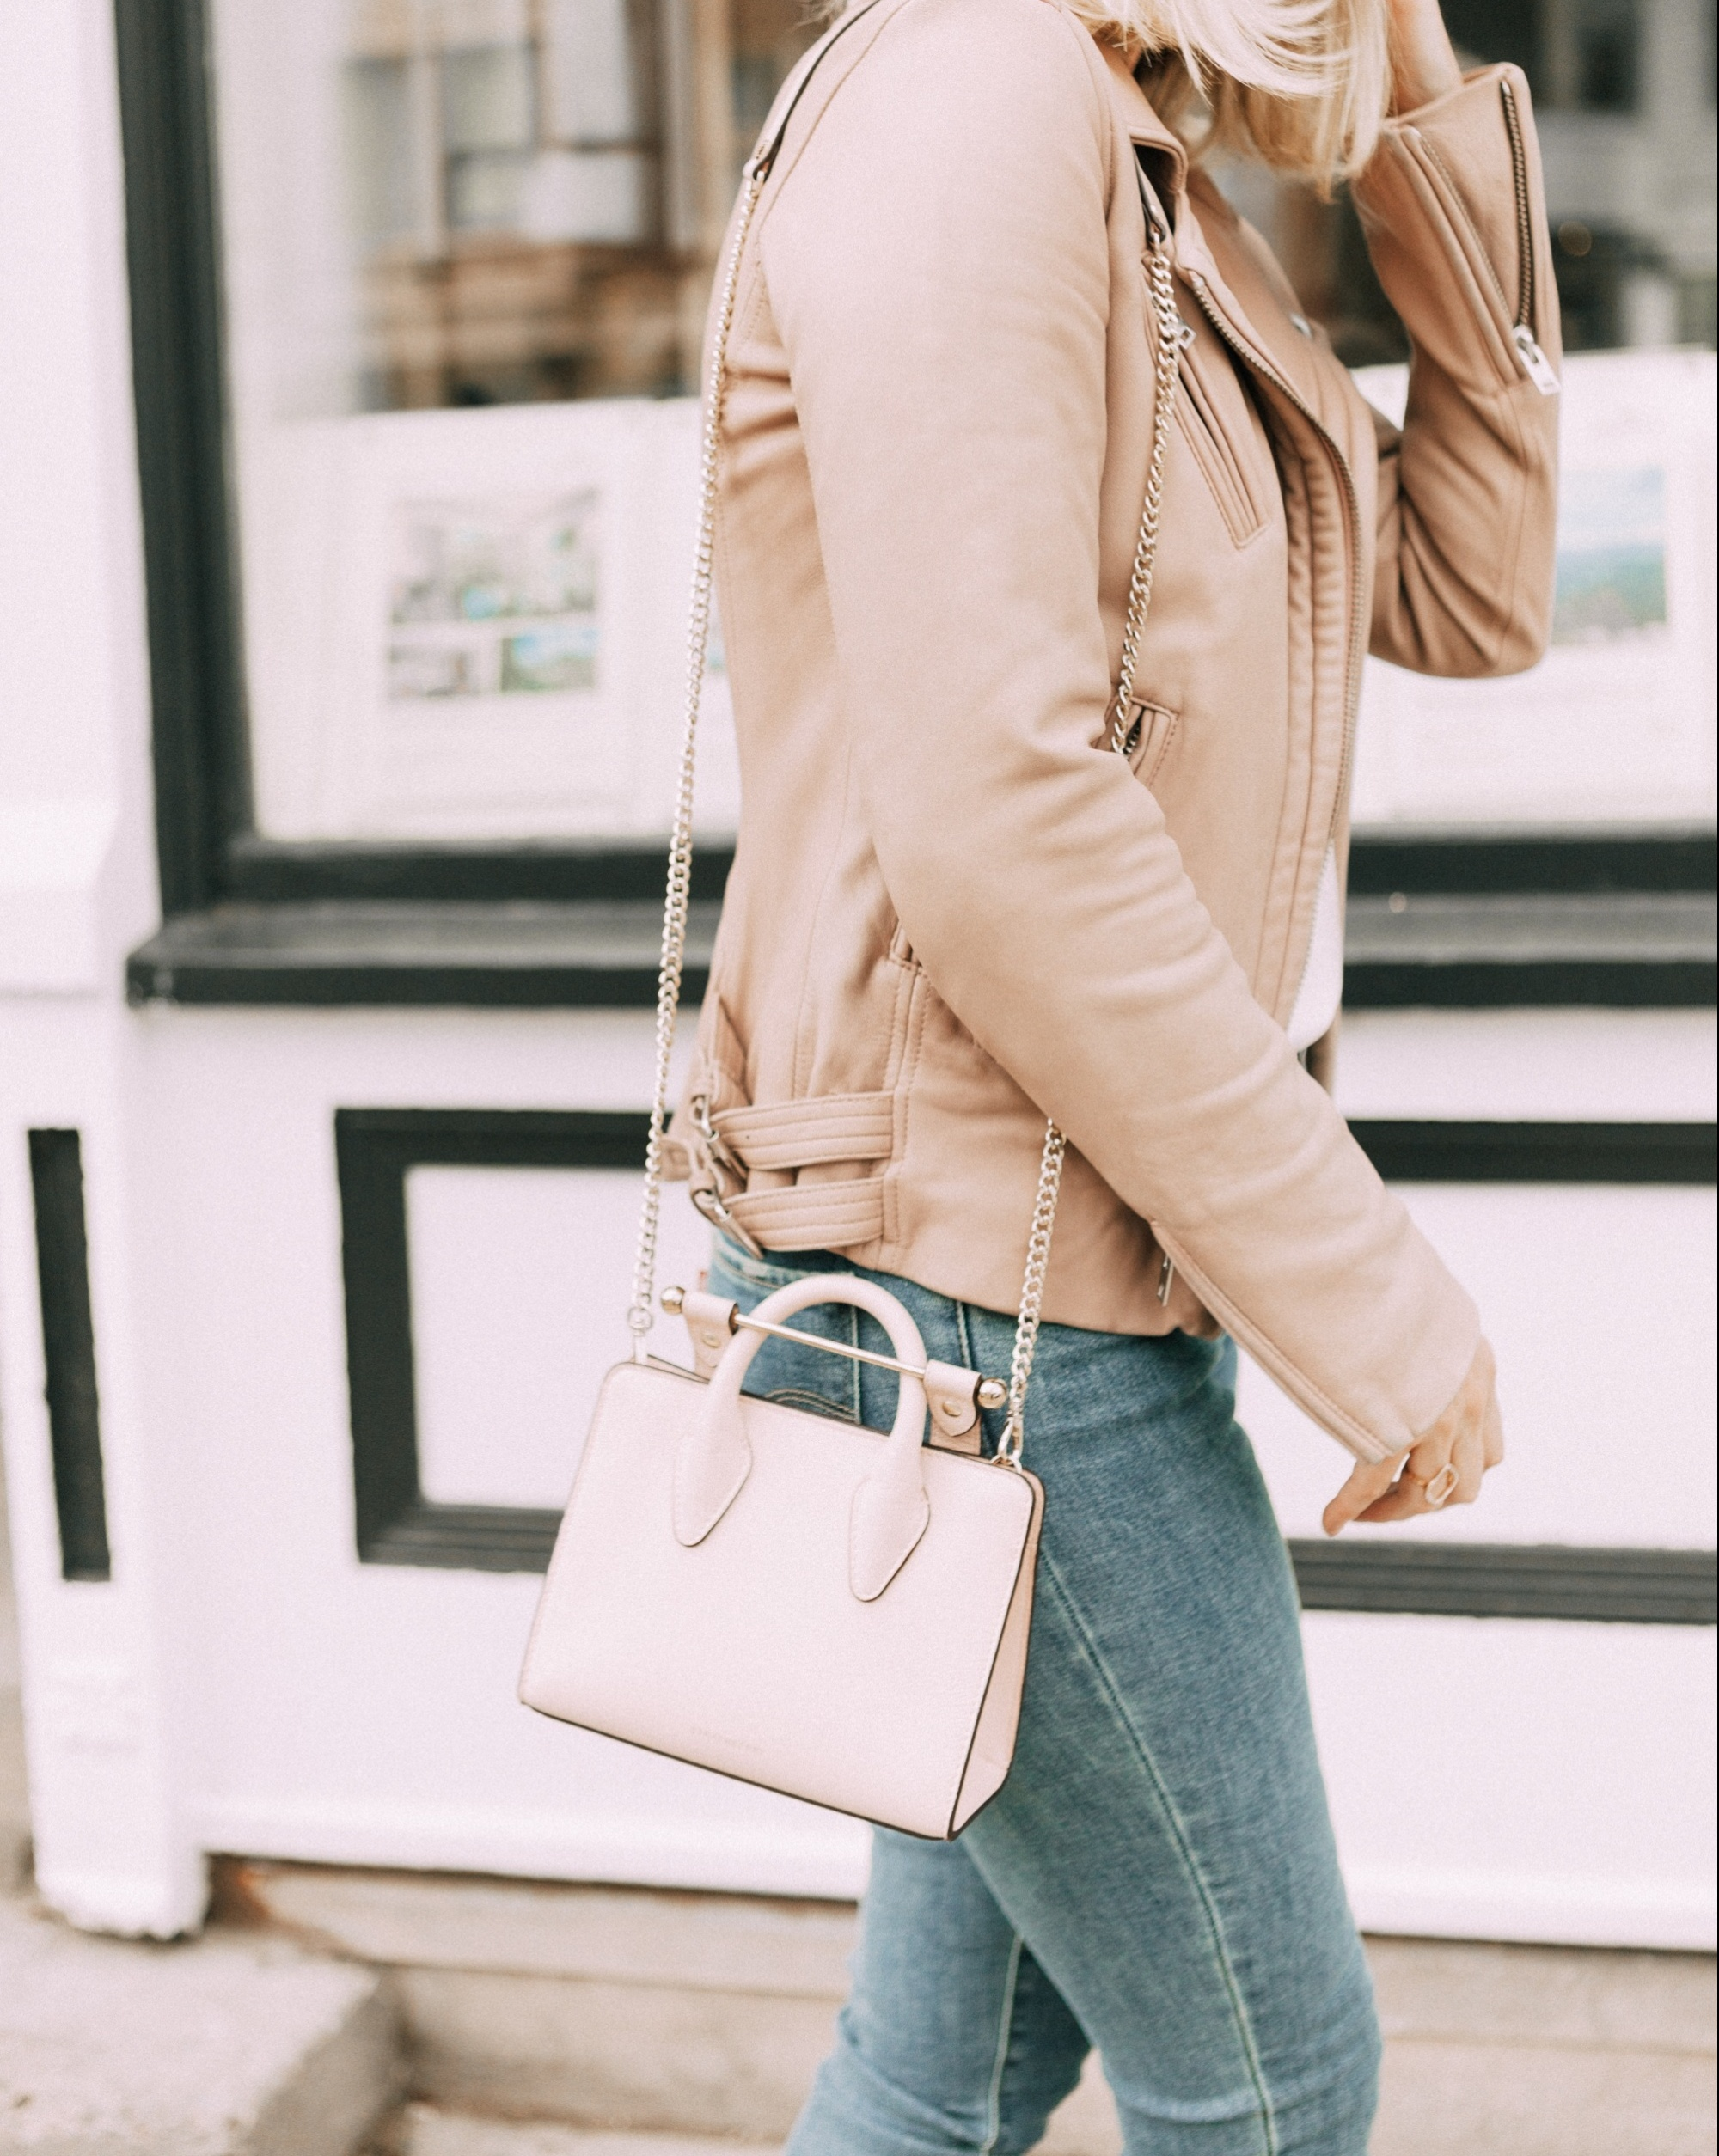 Hot Handbags, Fashion blogger Erin Busbee of BusbeeStyle.com wearing a pale pink Strathberry Nano Tote with a beige leather jacket by IRO, white lace cami, and Levi jeans in Telluride, Colorado